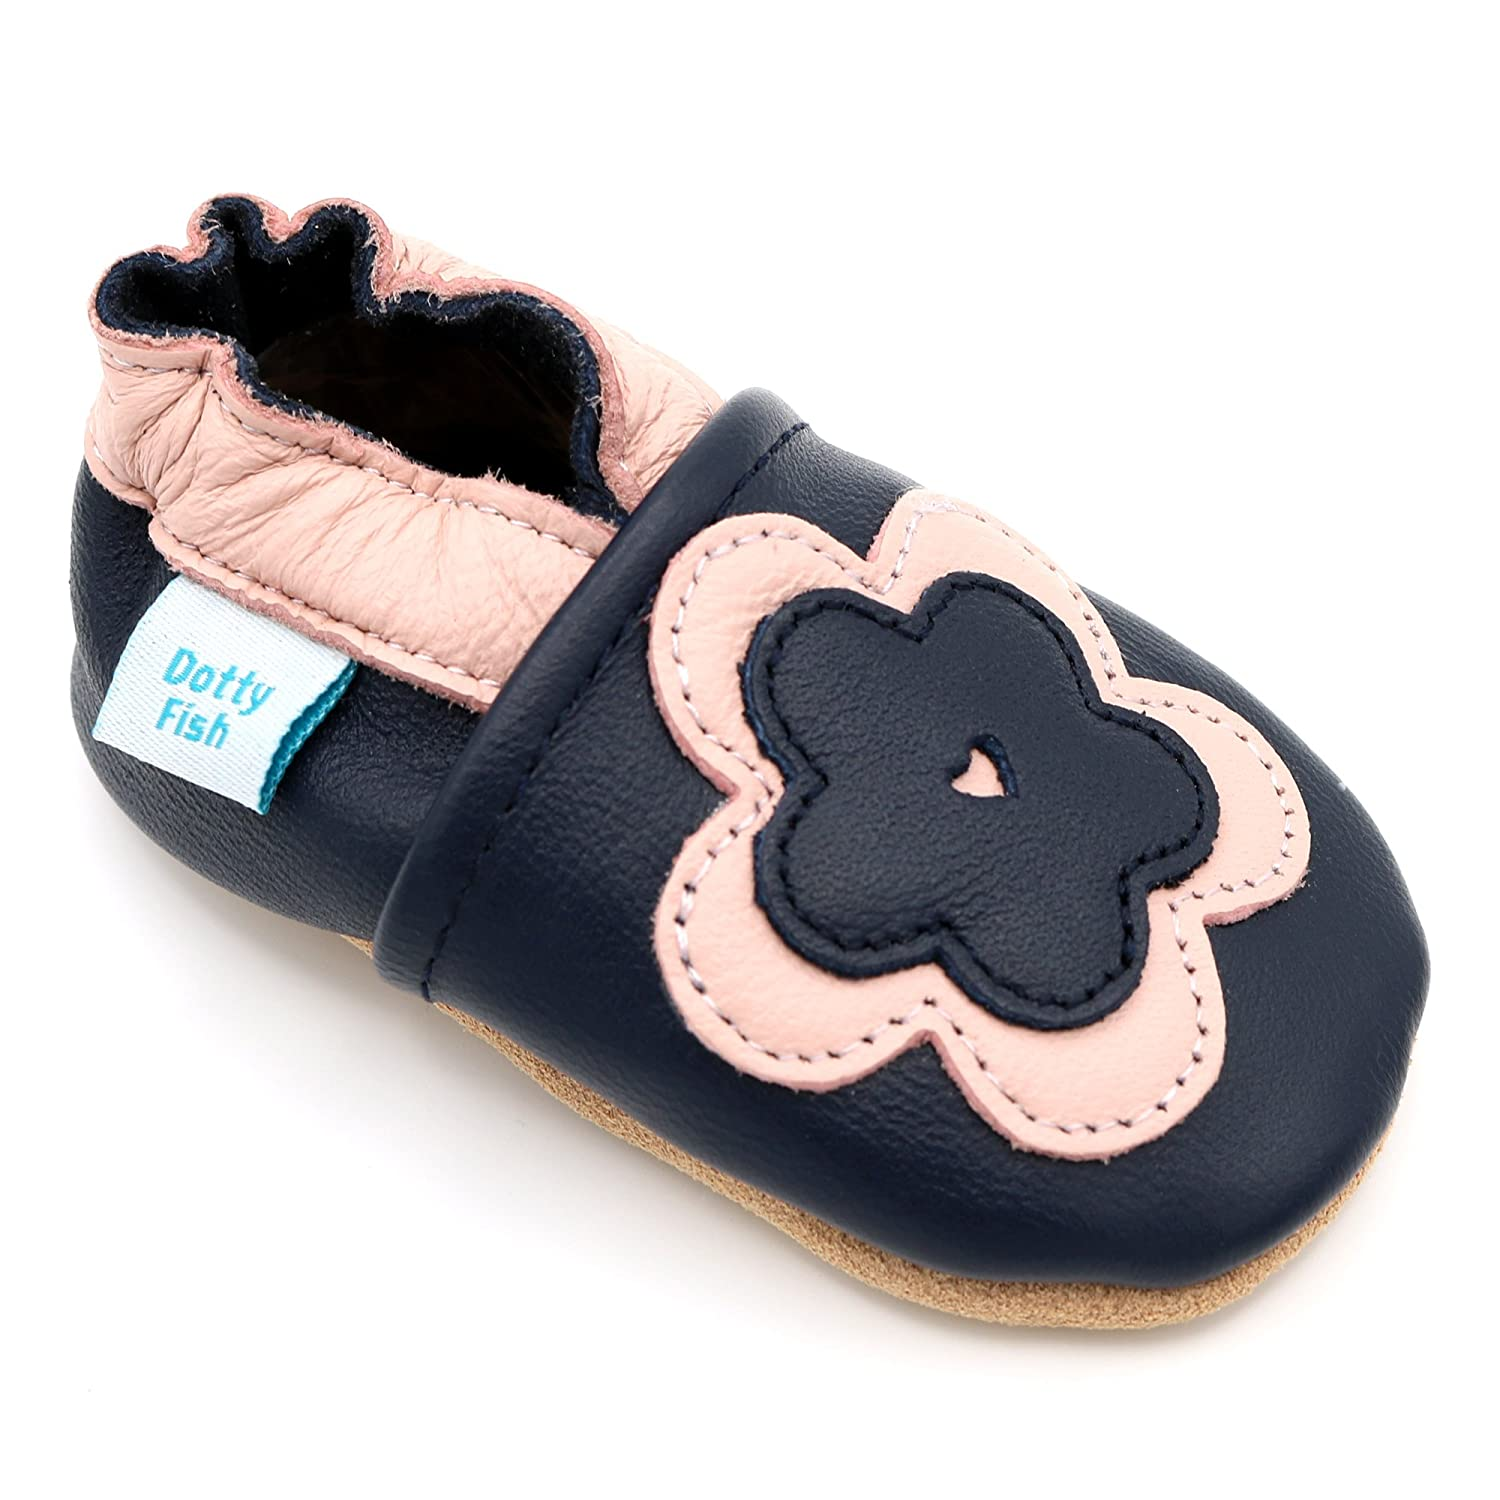 f2d0bababb14 Amazon.com | Dotty Fish Soft Leather Infant and Toddler Shoes for Girls. |  Slippers